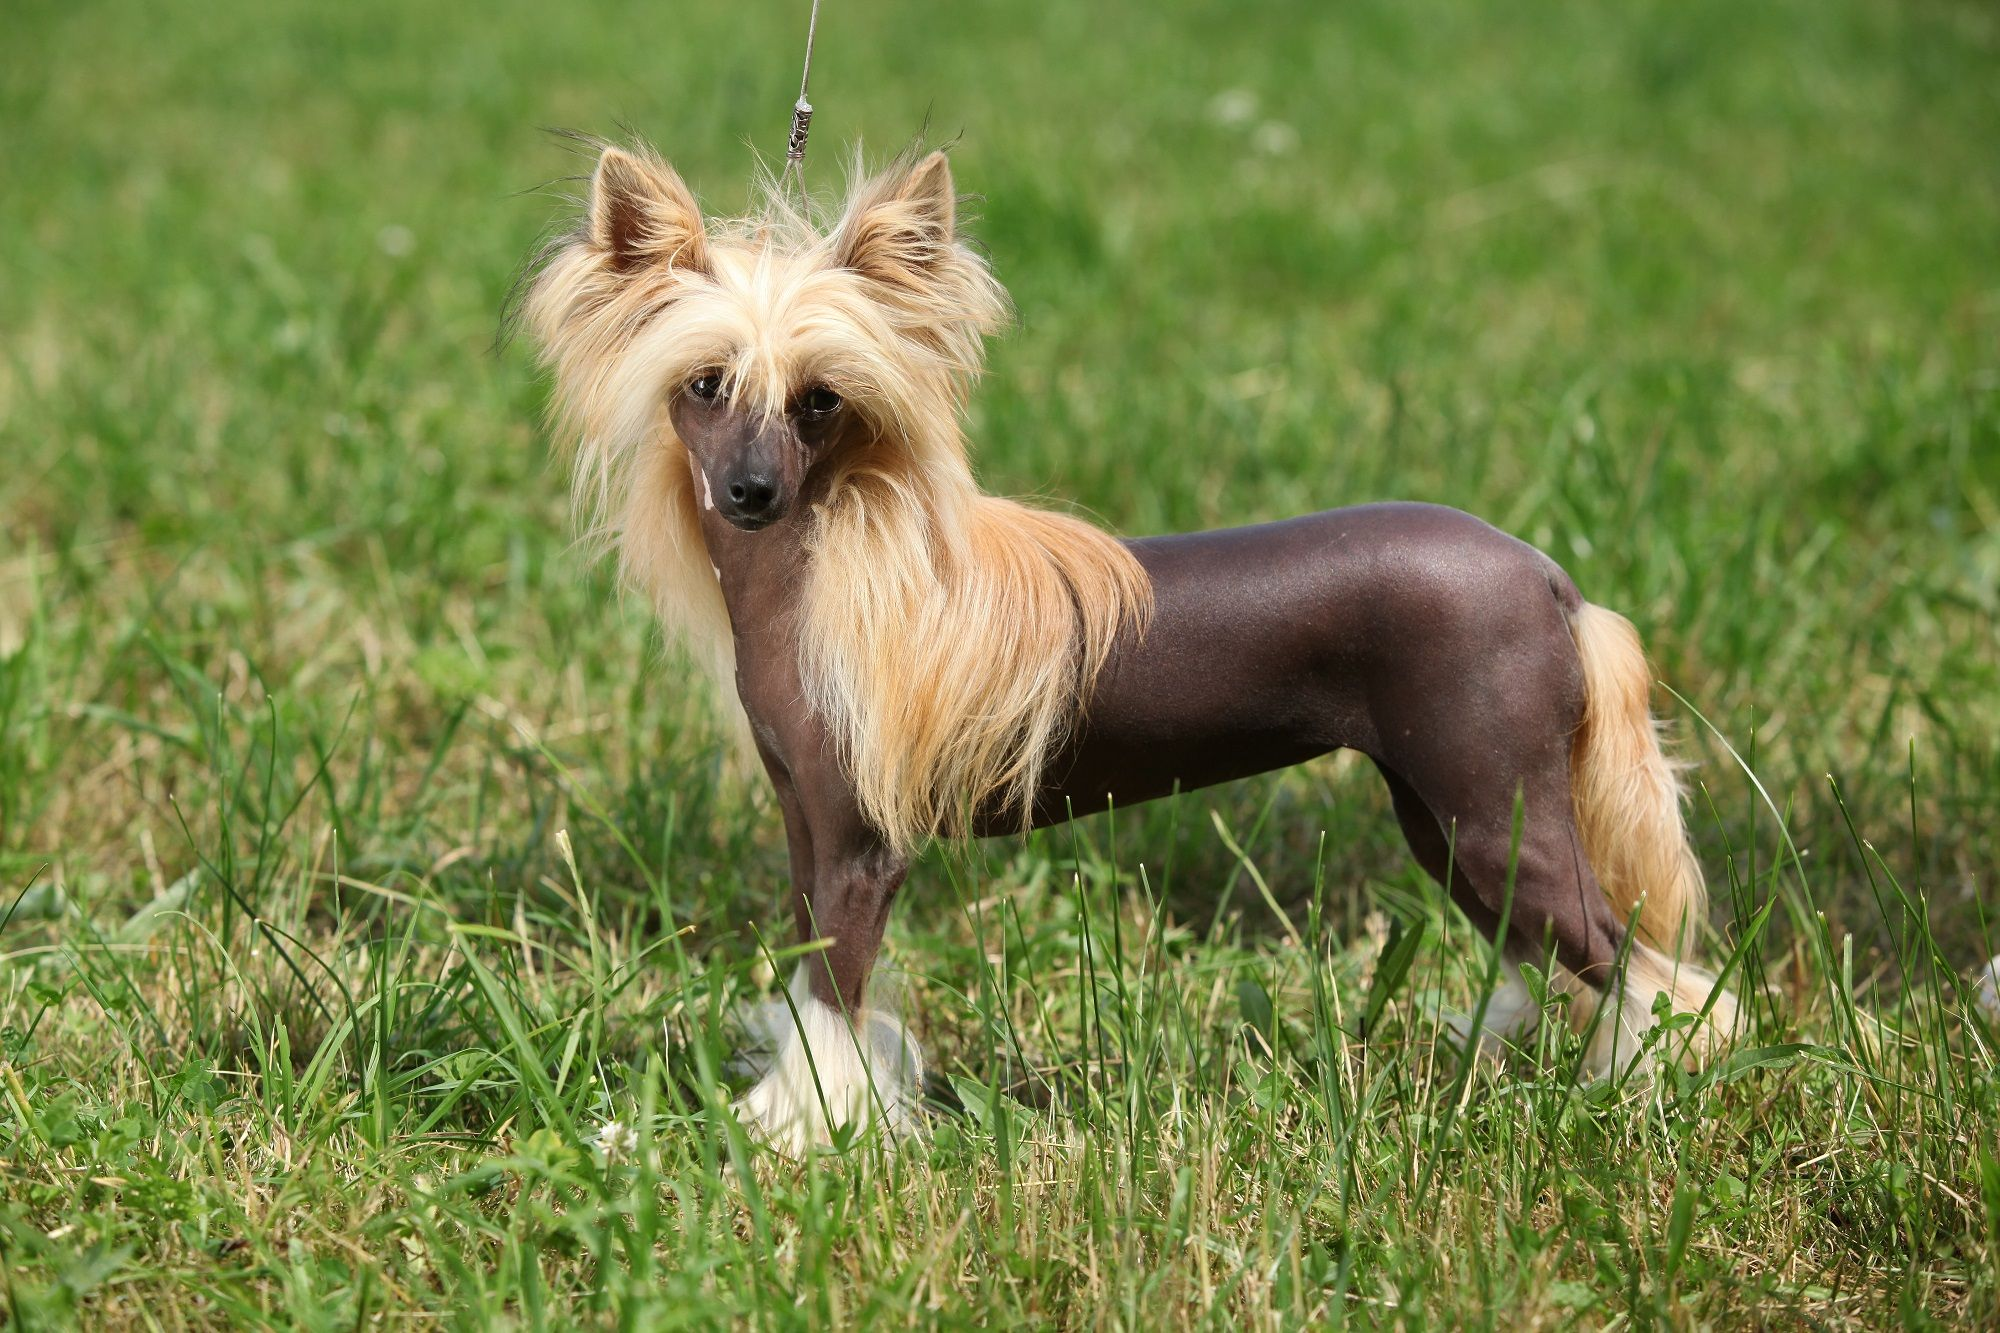 1. Chinese Crested